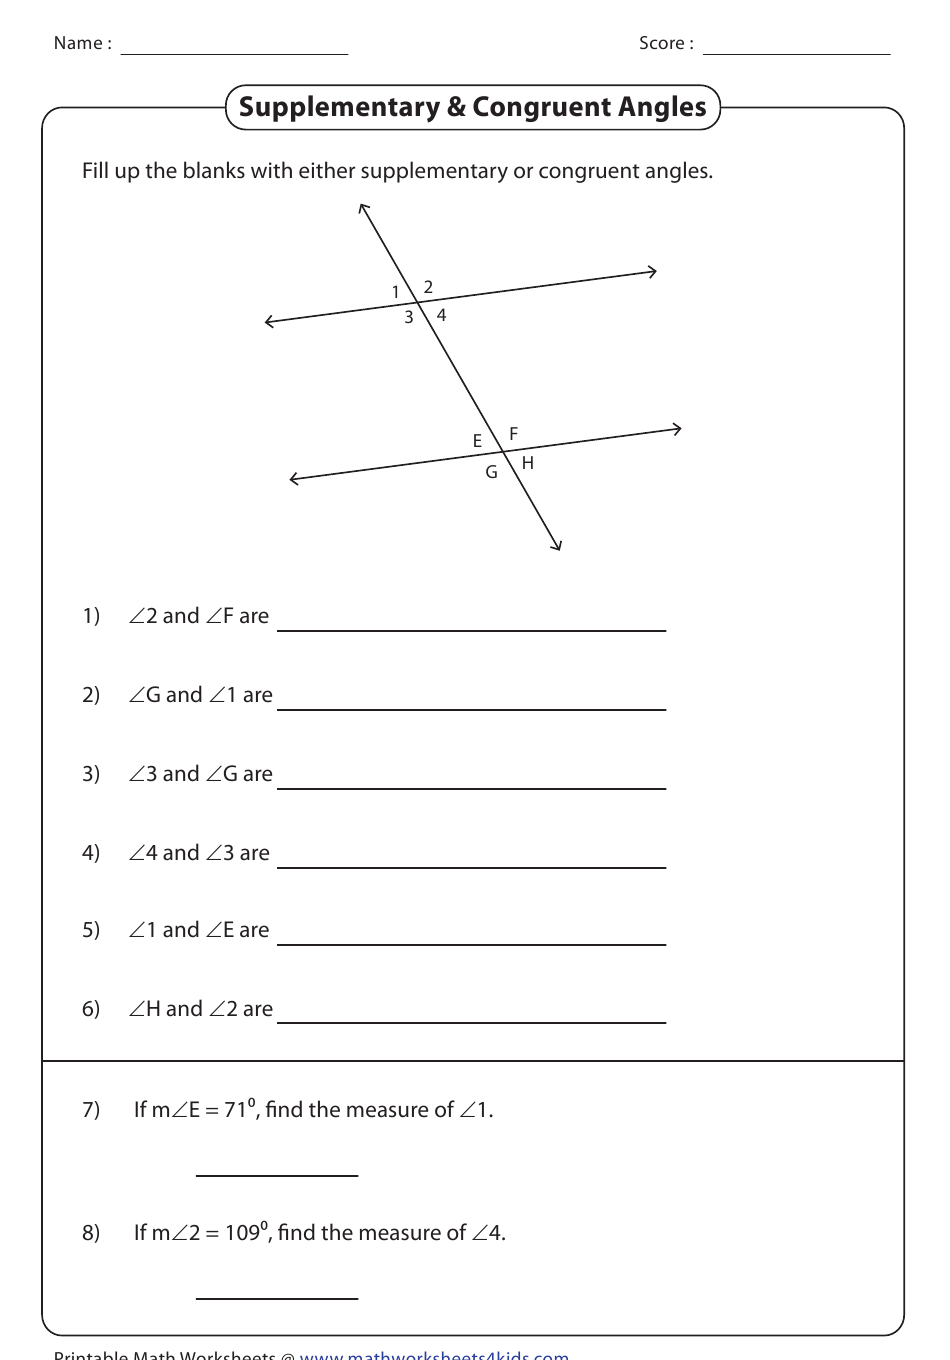 Supplementary & Congruent Angles Worksheet With Answer Key ...